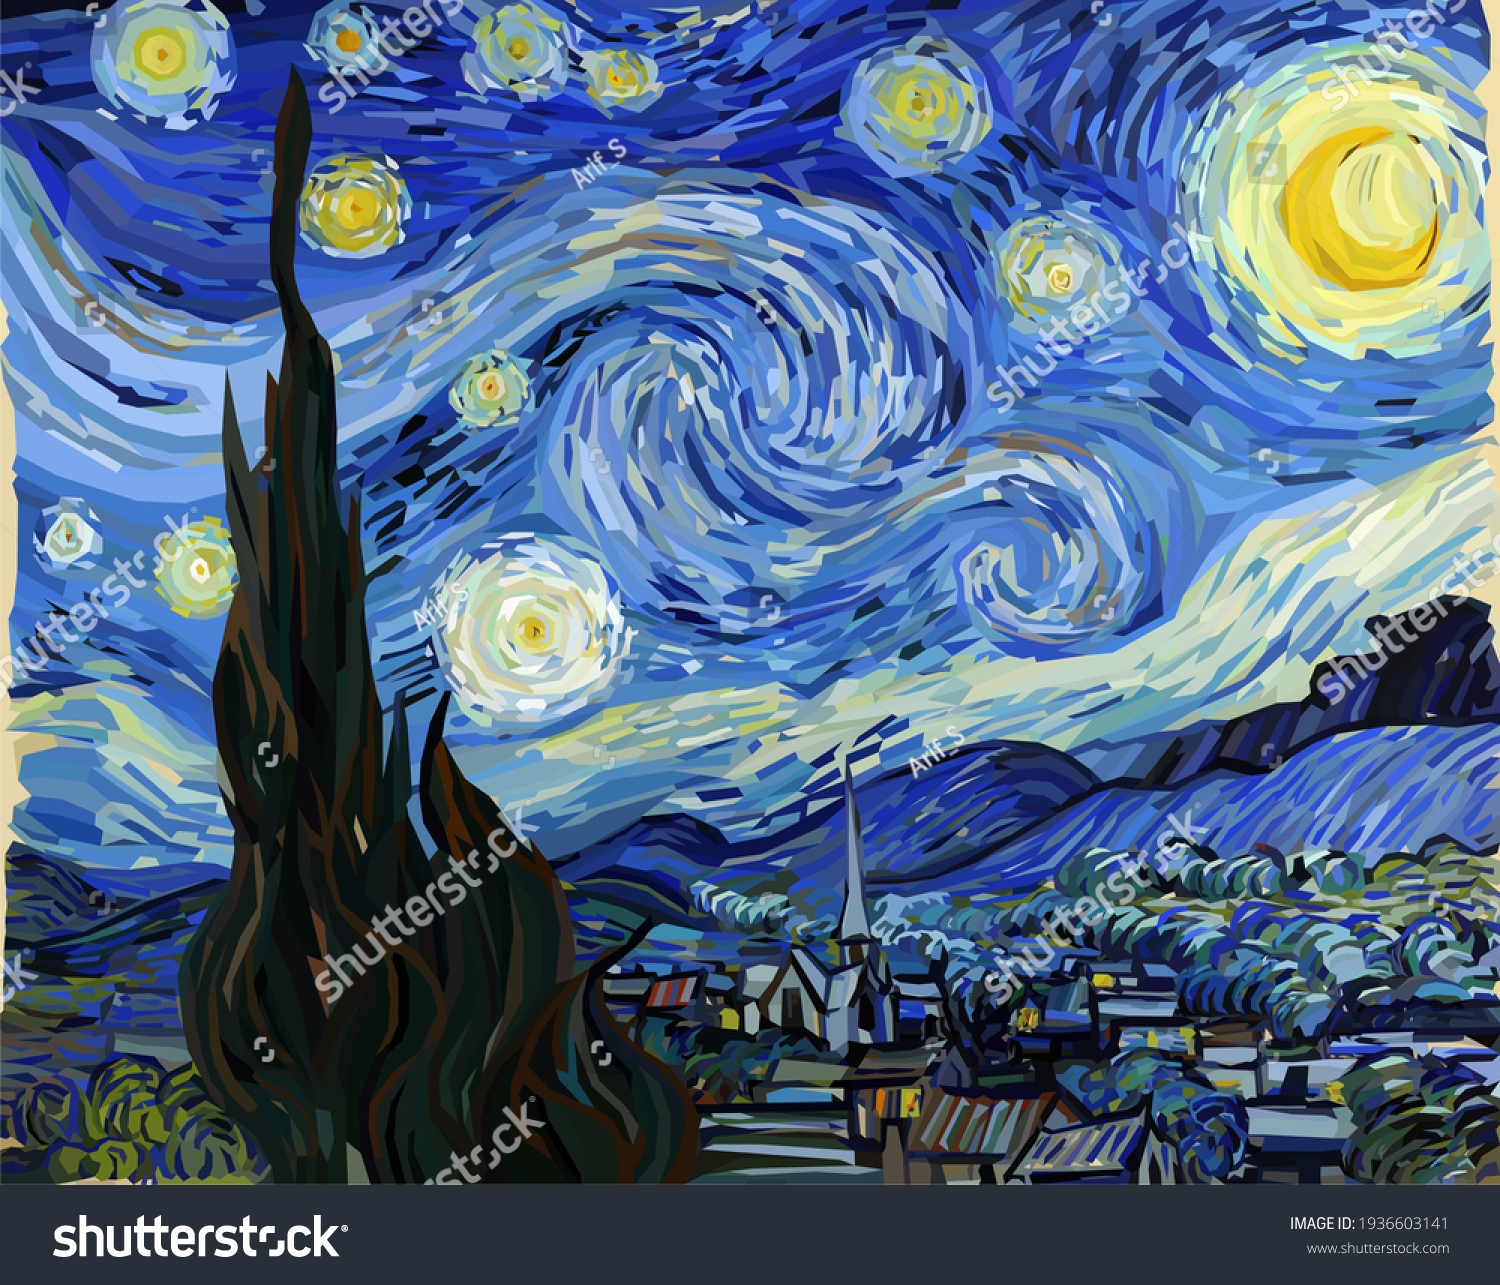 The Starry Night - Vincent van Gogh Wall Mural Traditional Painting Conceptual Polygonal Illustration